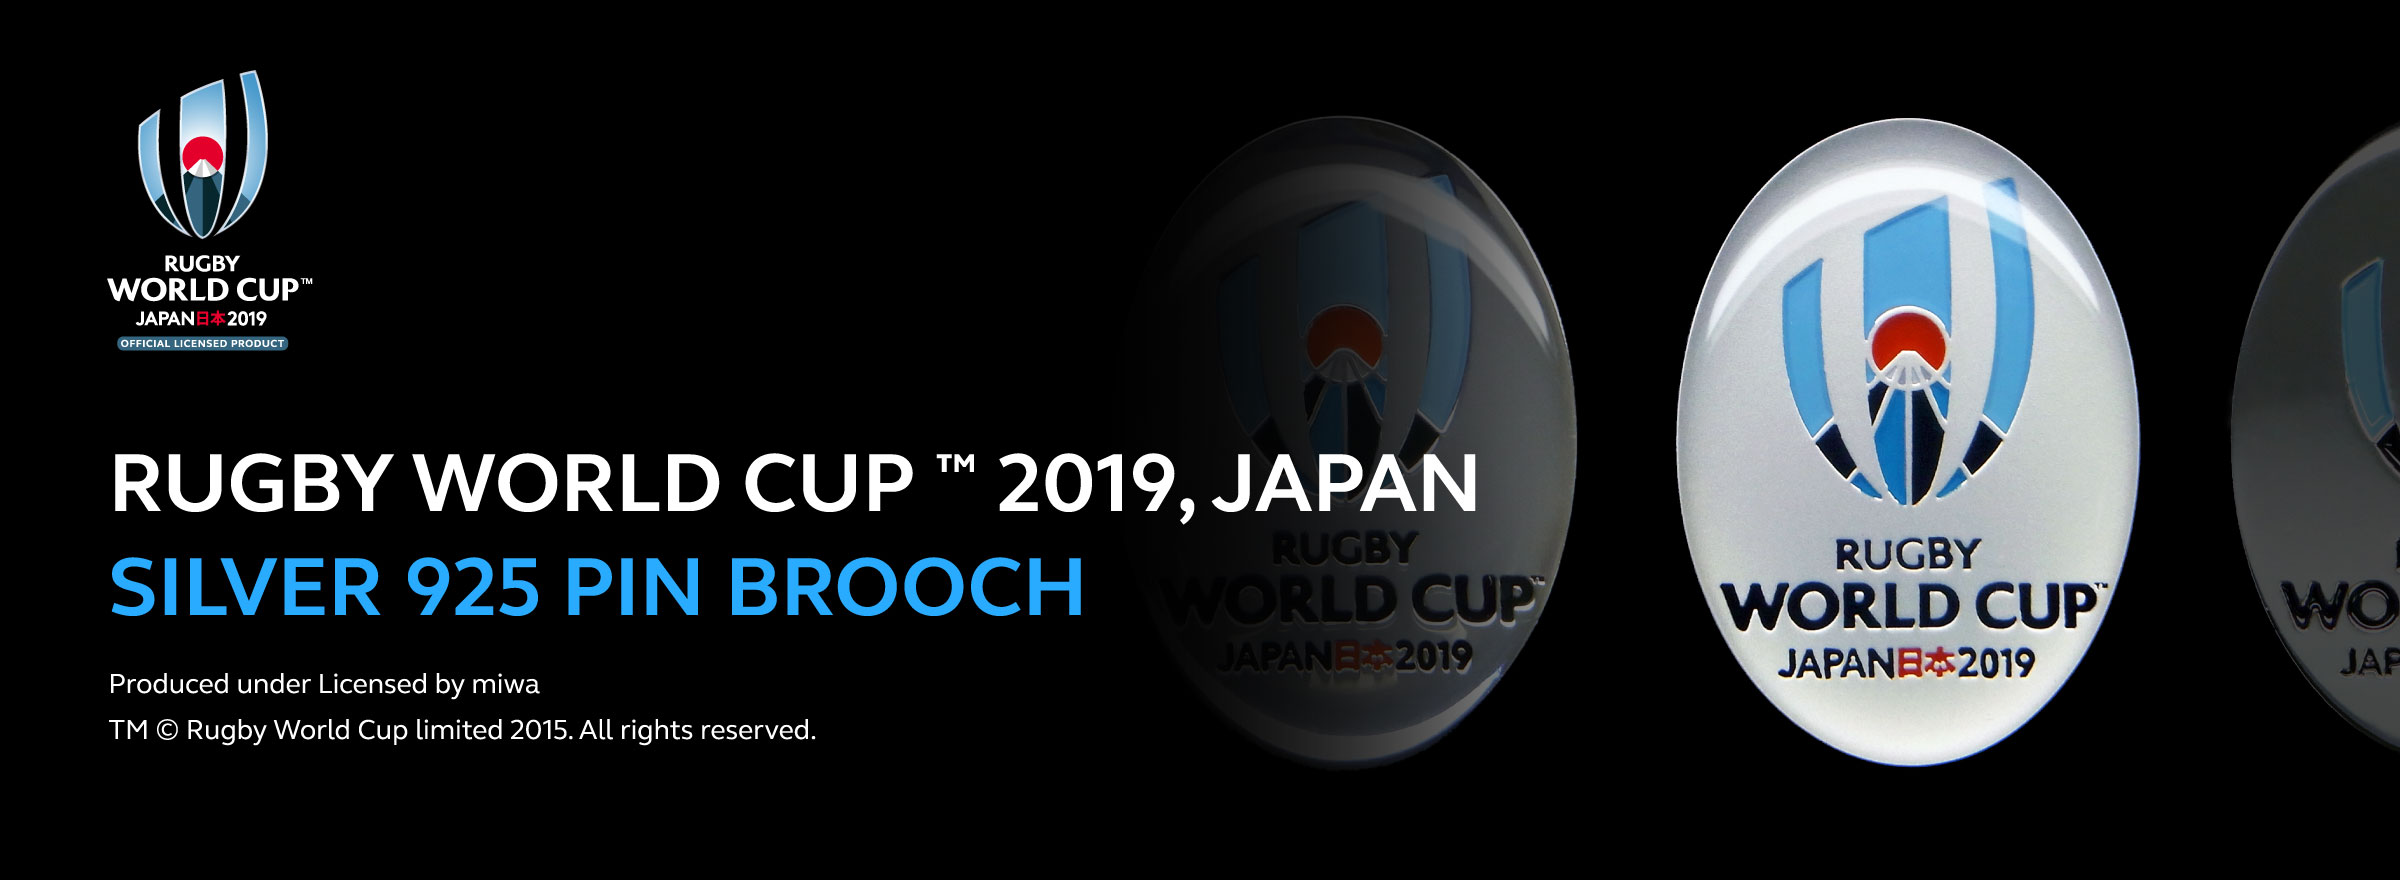 RUGBY WORLD CUP(TM)2019,JAPAN公式ライセンスグッズ